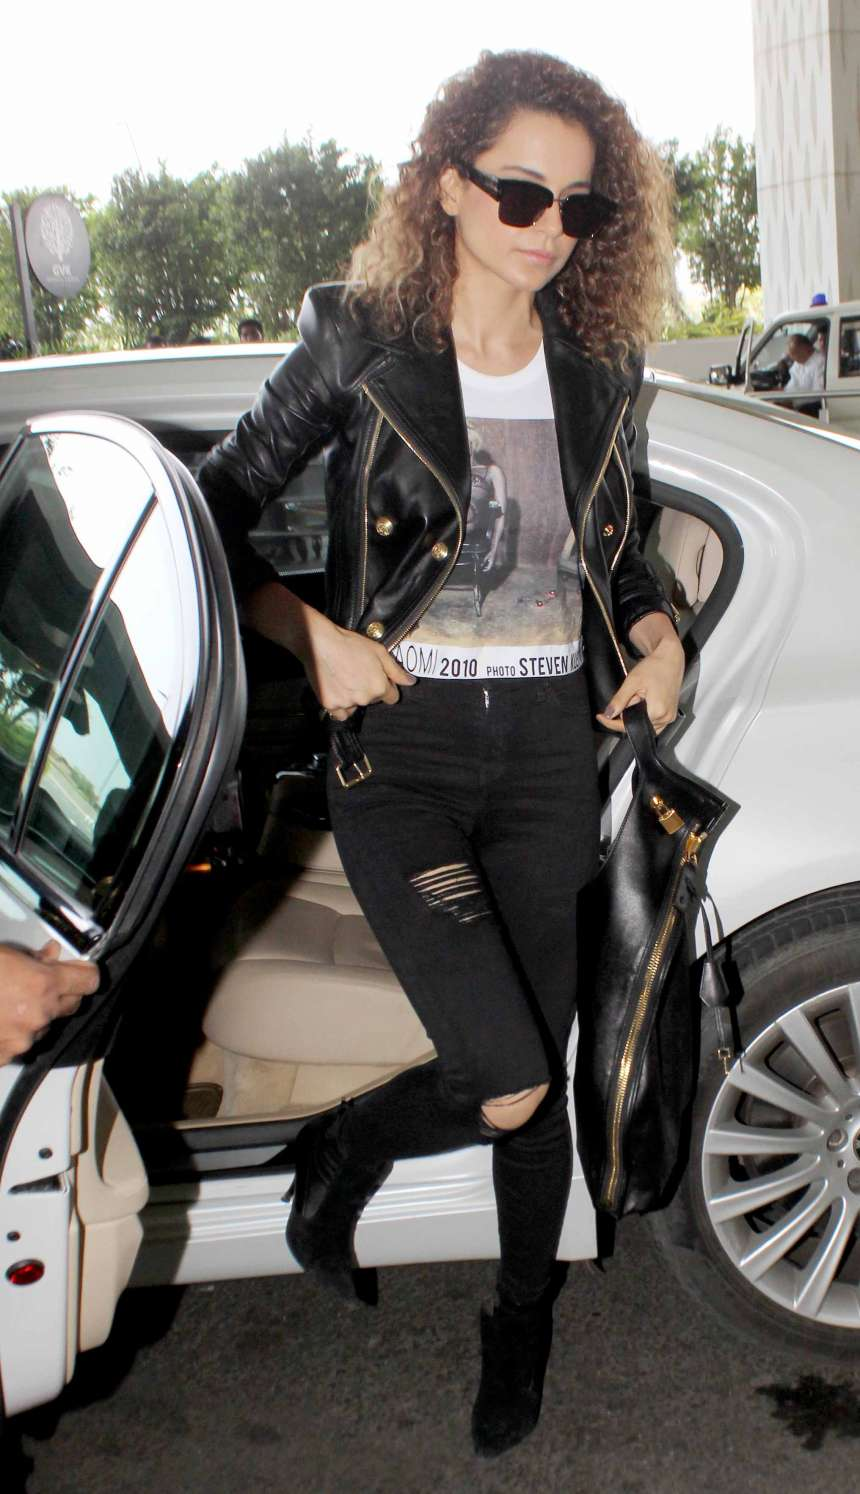 Kangana Ranaut is in her fashion best like usual. The 'Queen' of Bollywood has redefined fashion for herself and her young fans. Wearing a black distresses jeans with a black leather biker jacket, the Manikarnika actress is slaying the airport attire